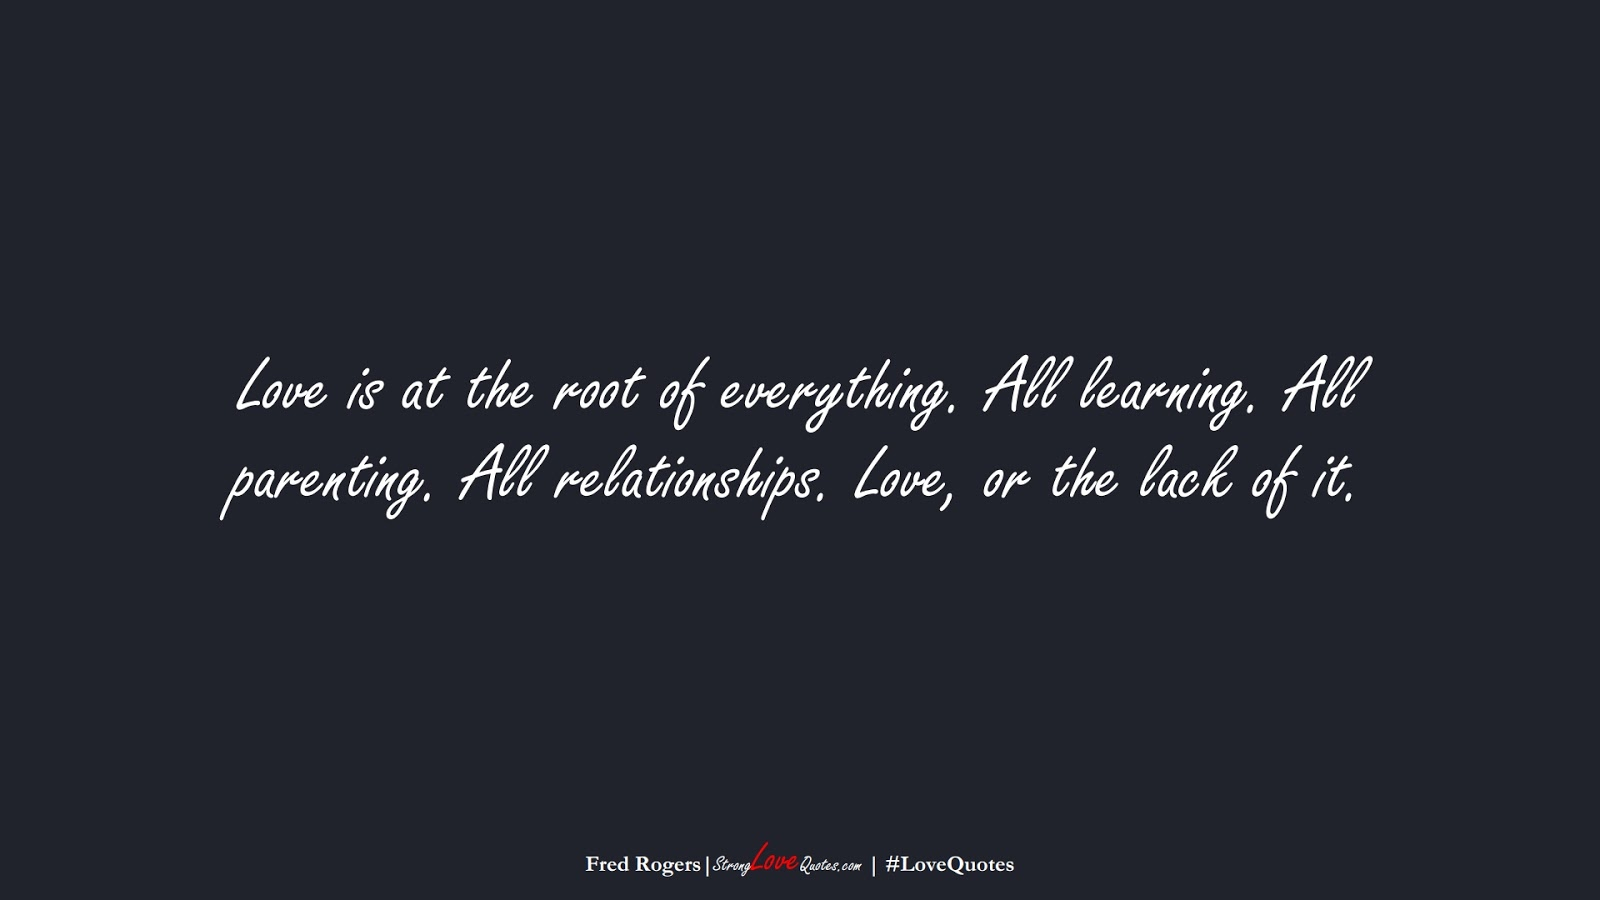 Love is at the root of everything. All learning. All parenting. All relationships. Love, or the lack of it. (Fred Rogers);  #LoveQuotes